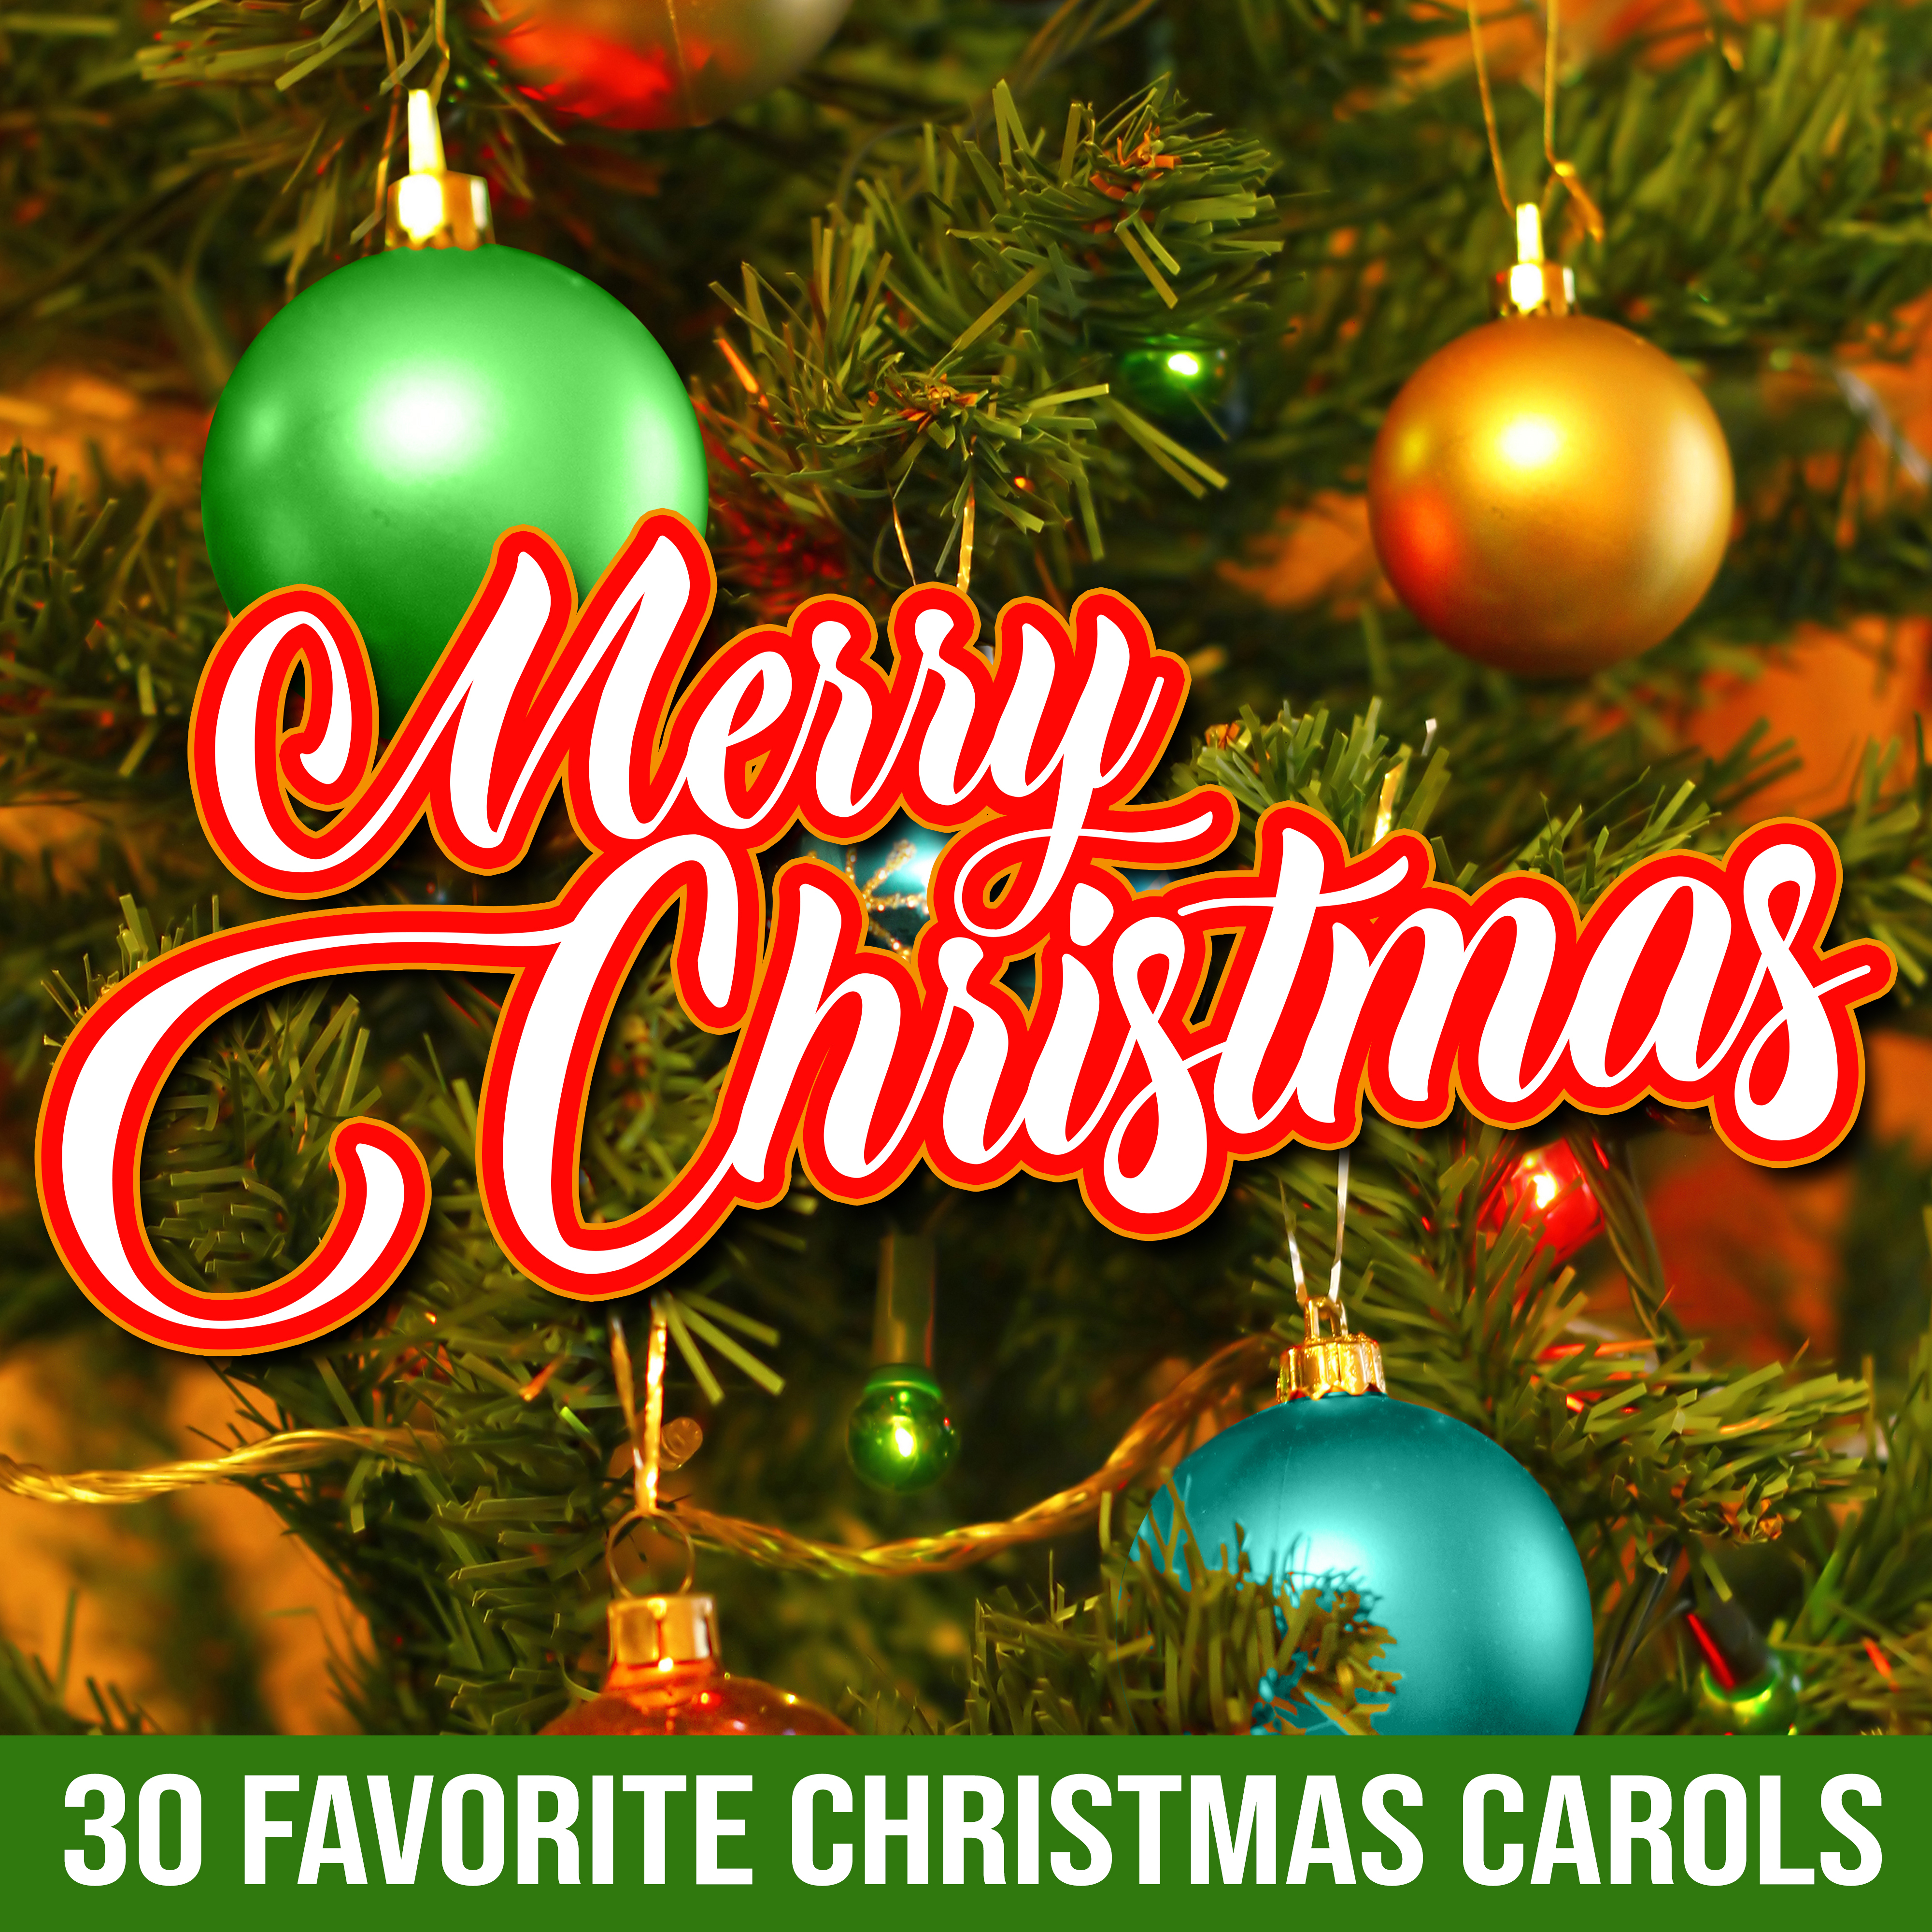 Iheartradio Christmas.Listen Free To Michelle Amato Jolly Old St Nicholas Radio